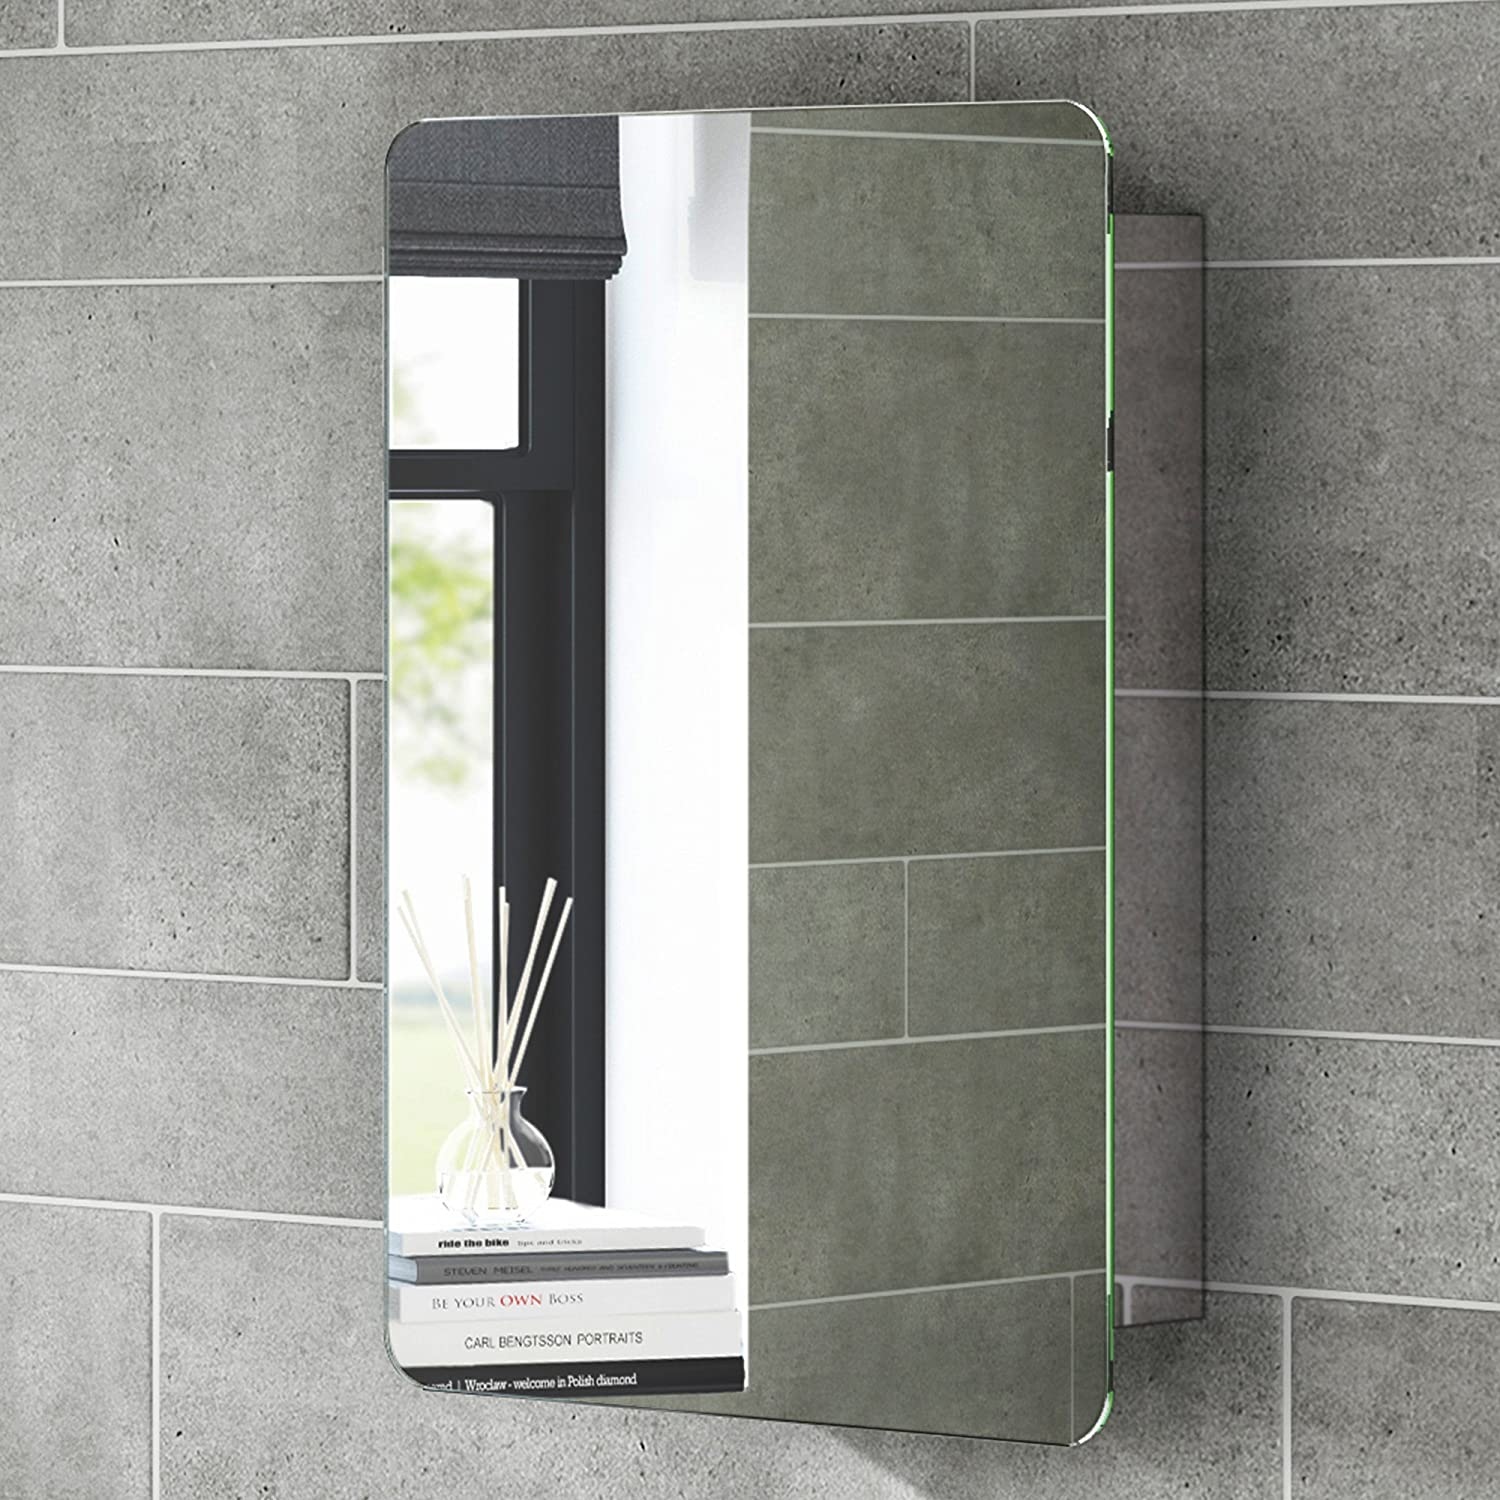 Mirrored Bathroom Cabinets Uk Gedy Space Saving Stainless Steel Bathroom Cabinet With Sliding